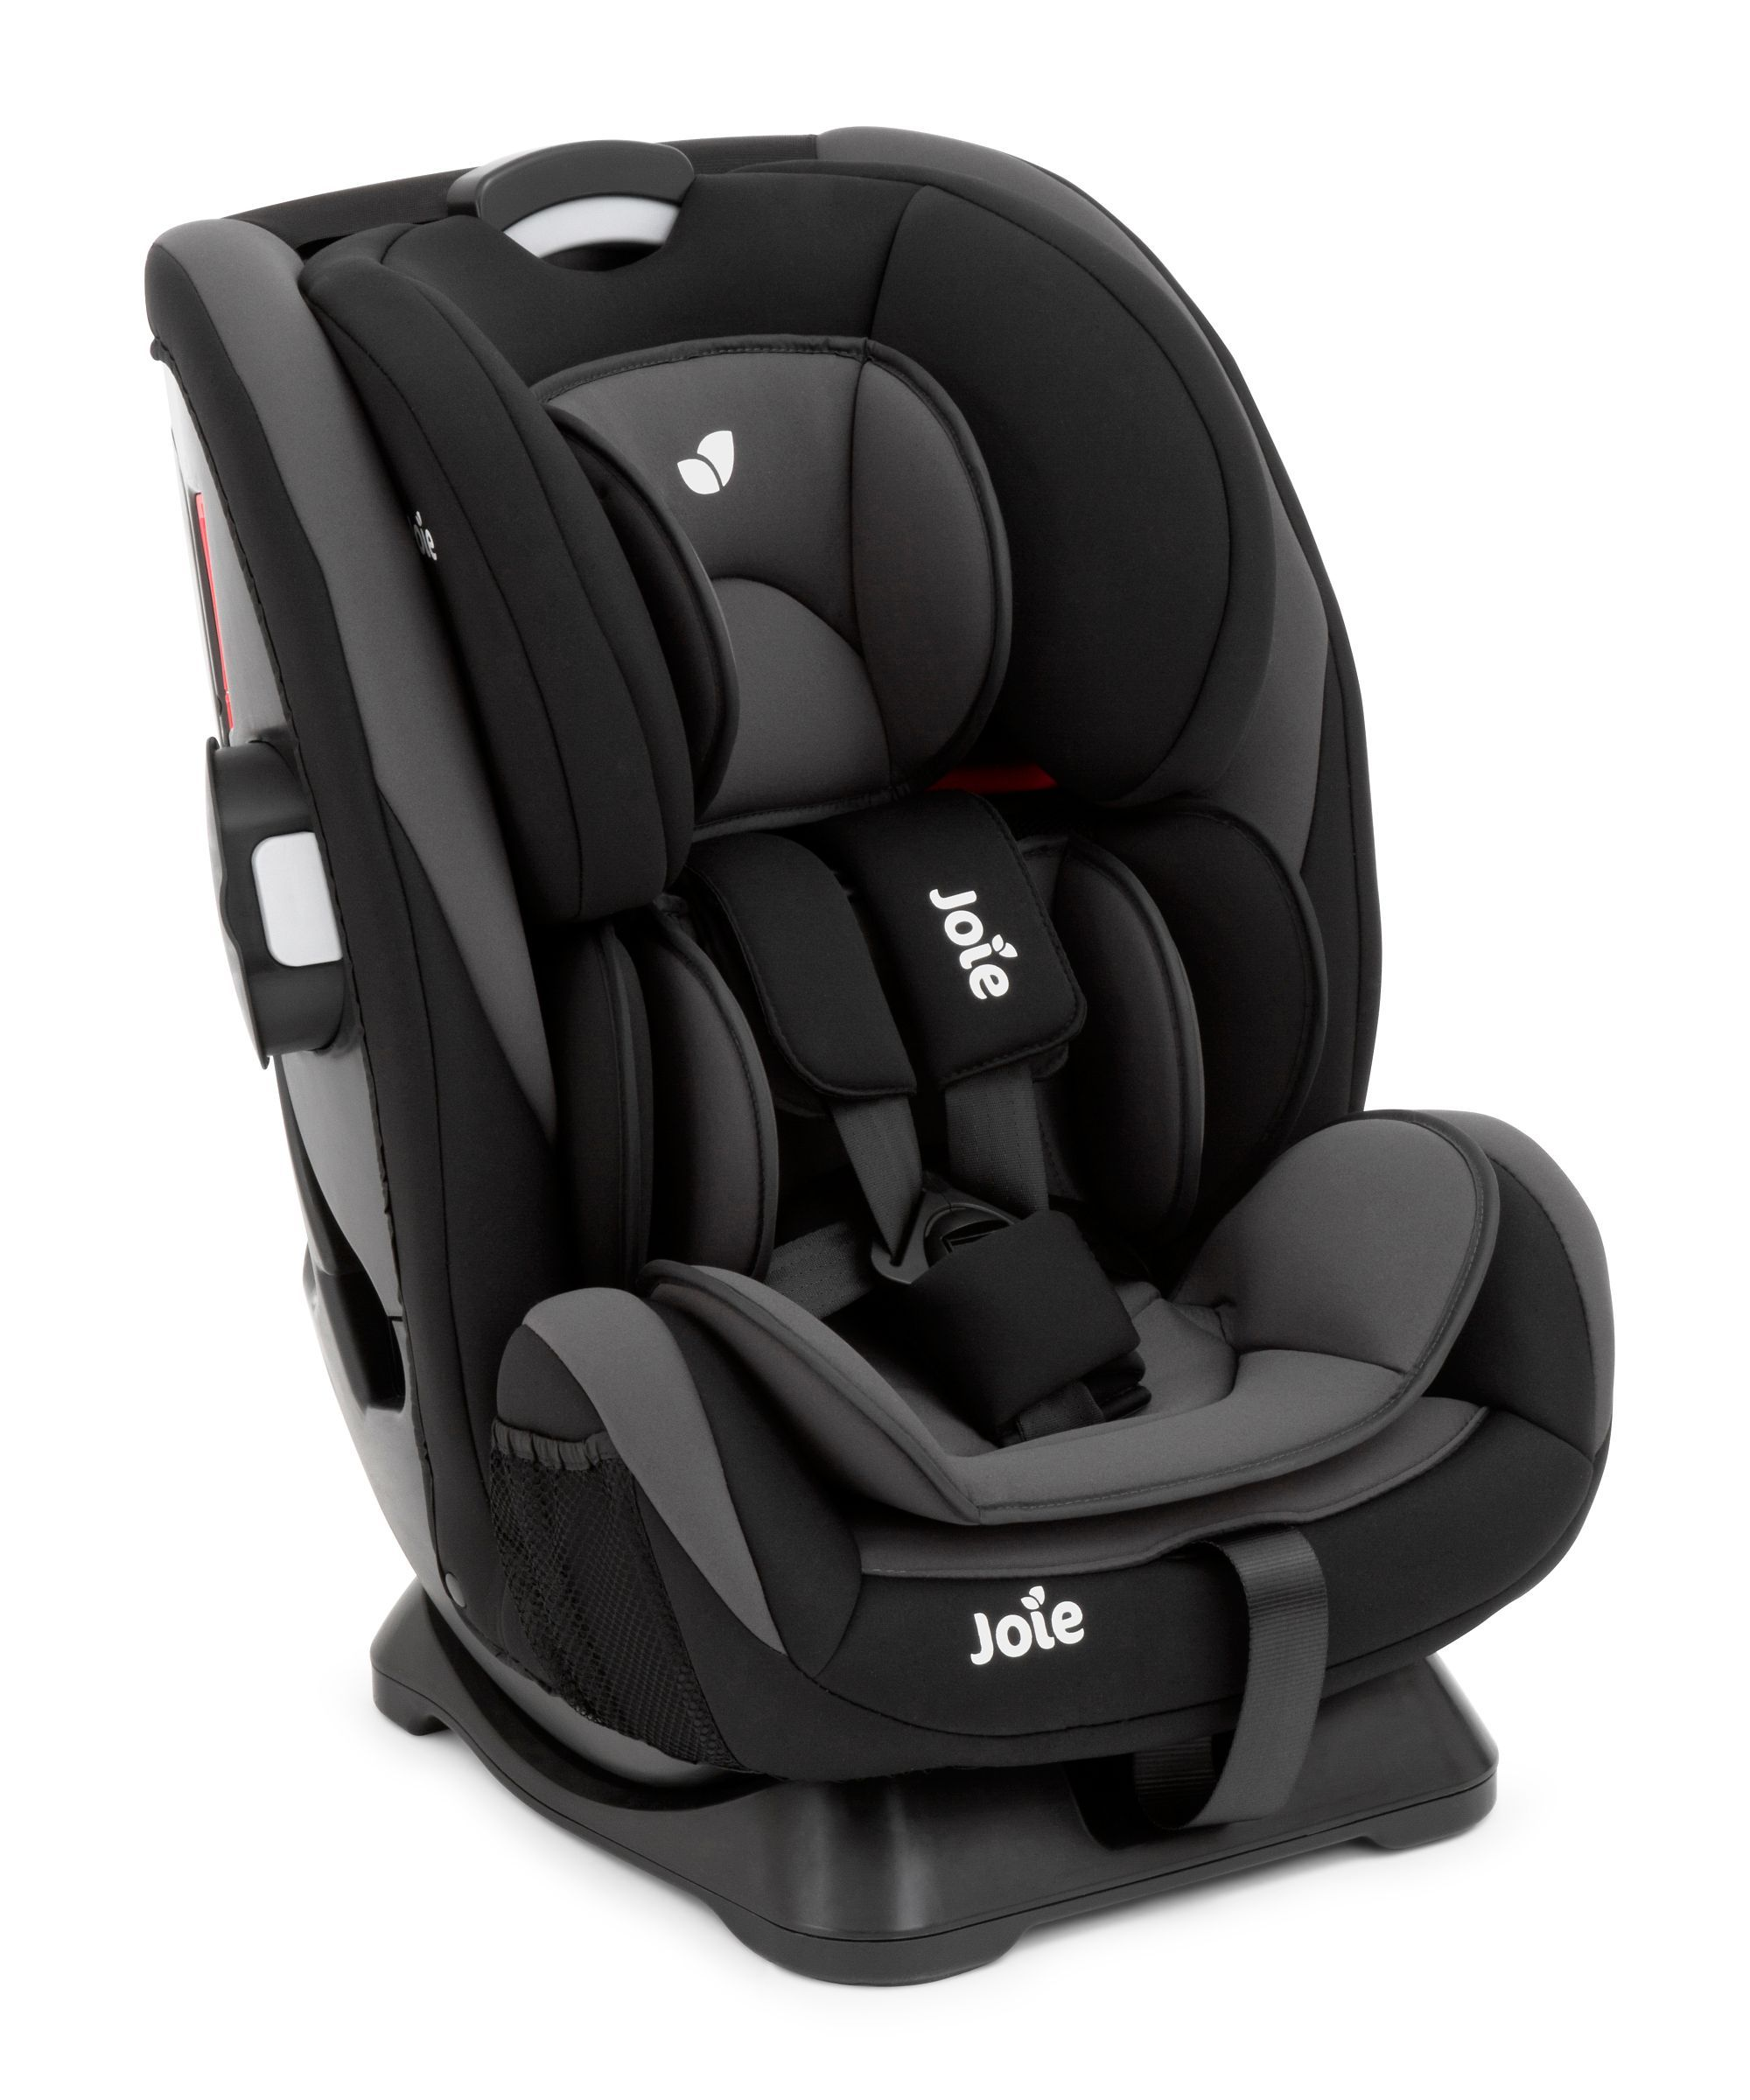 Joie Every Stage Car Seat Two Tone Black Car seats